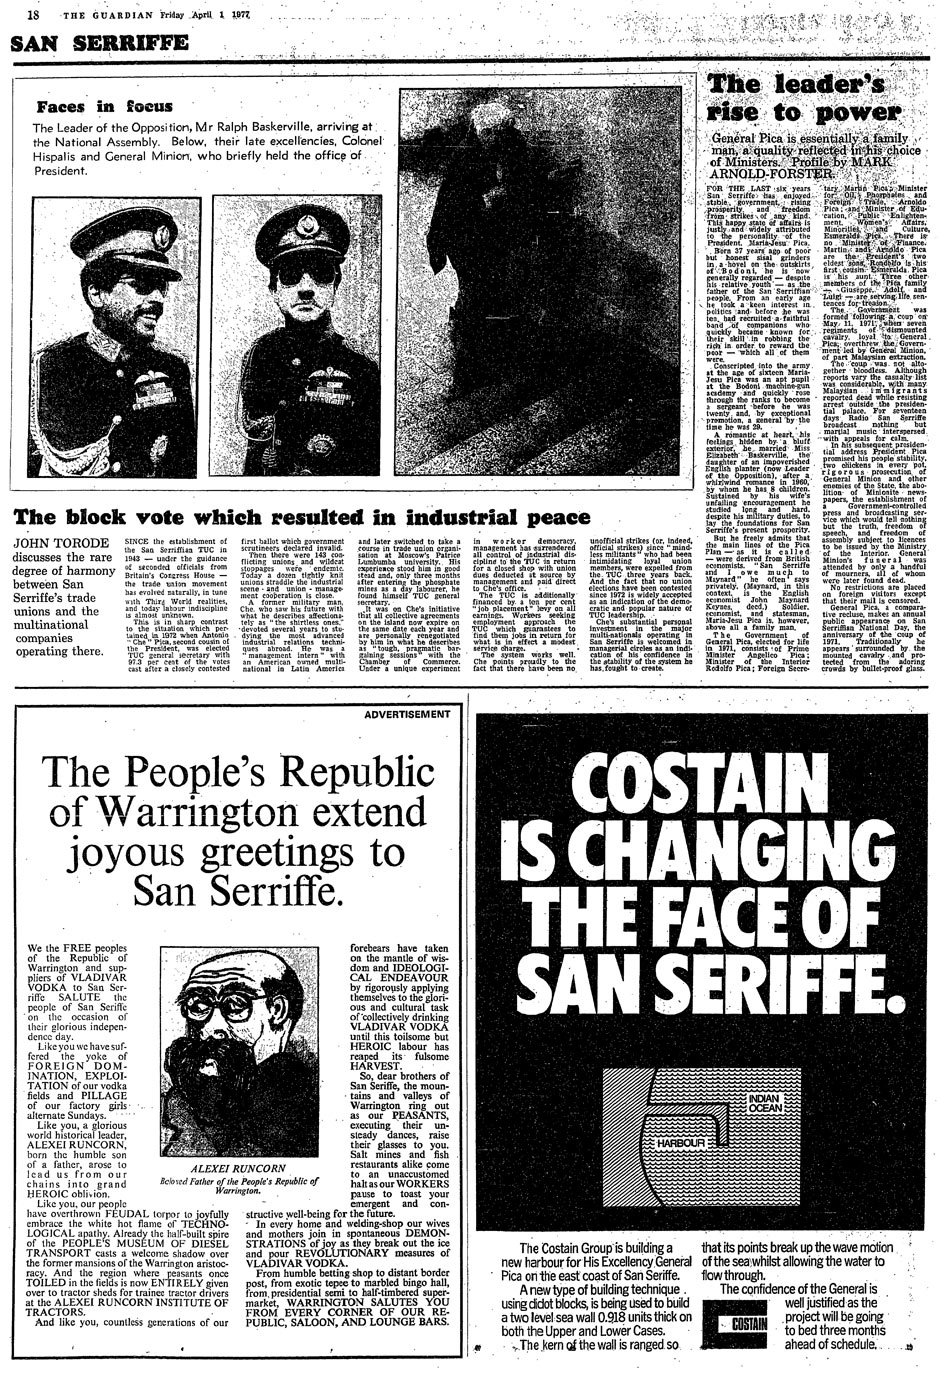 Guardian San Serriffe April Fool 1977